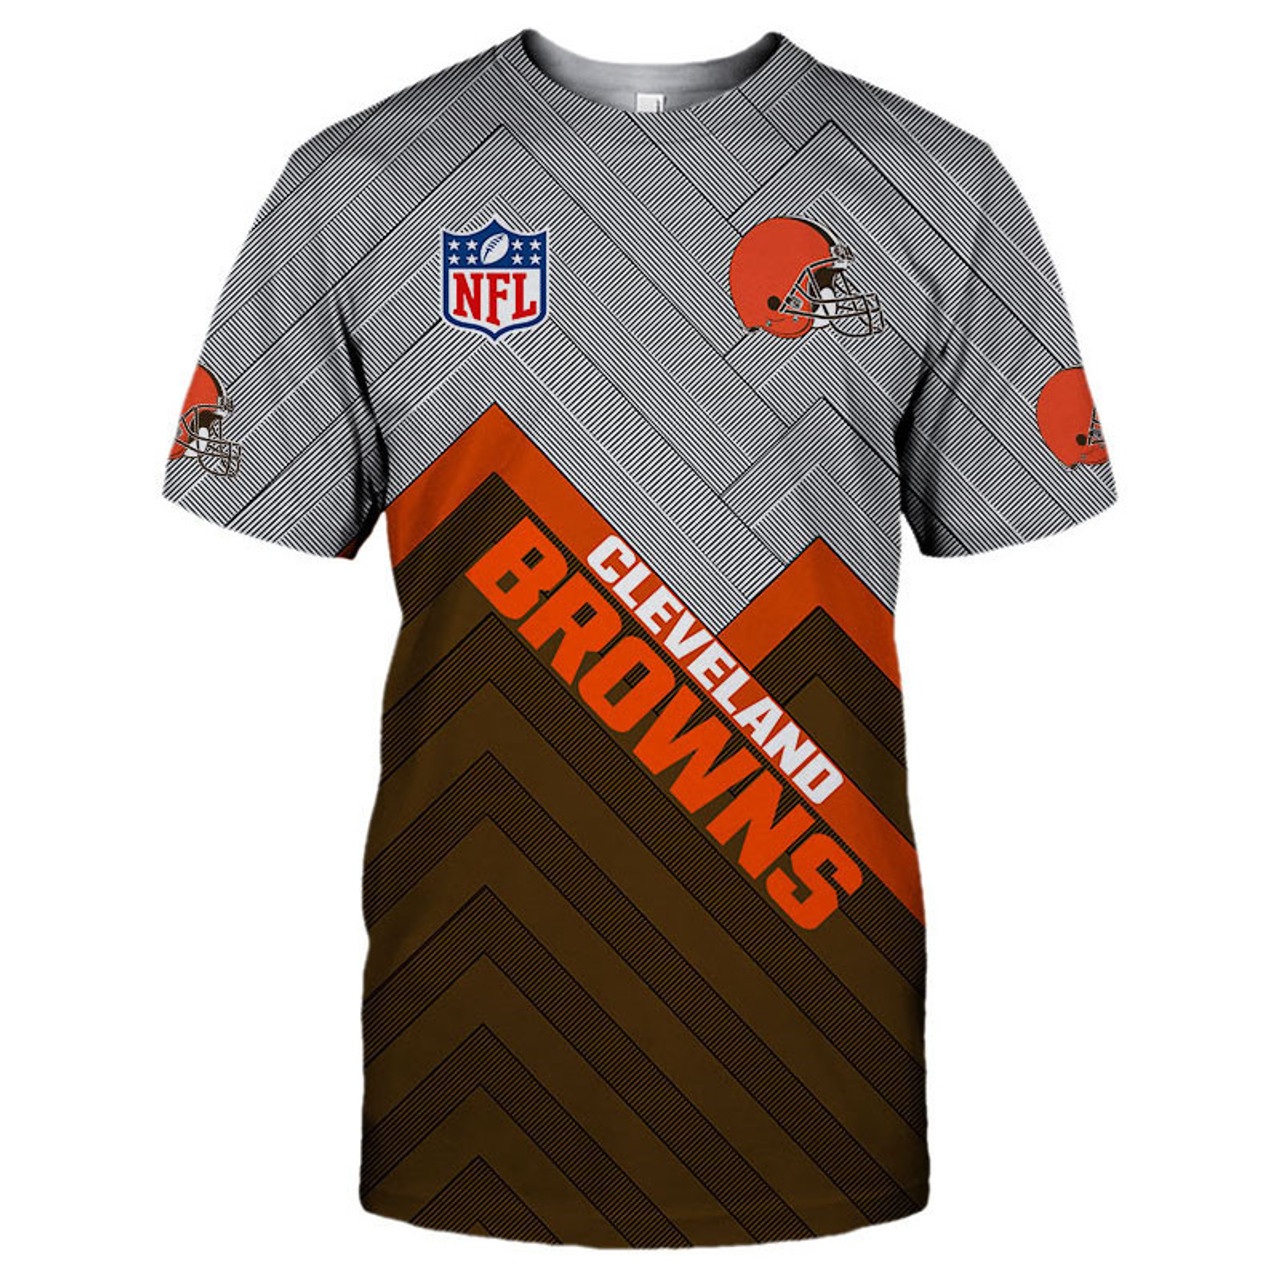 **(NEW-OFFICIAL-N.F.L.CLEVELAND-BROWNS-TEAM-TEES/NICE-3D-CUSTOM-BROWNS-LOGOS & OFFICIAL-BROWNS-CLASSIC-TEAM-COLORS/NICE-3D-DETAILED-GRAPHIC-PRINTED-DOUBLE-SIDED/ALL-OVER-ENTIRE-TEE-SHIRT-PRINTED-DESIGN/TRENDY-PREMIUM-N.F.L.BROWNS-TEES)**